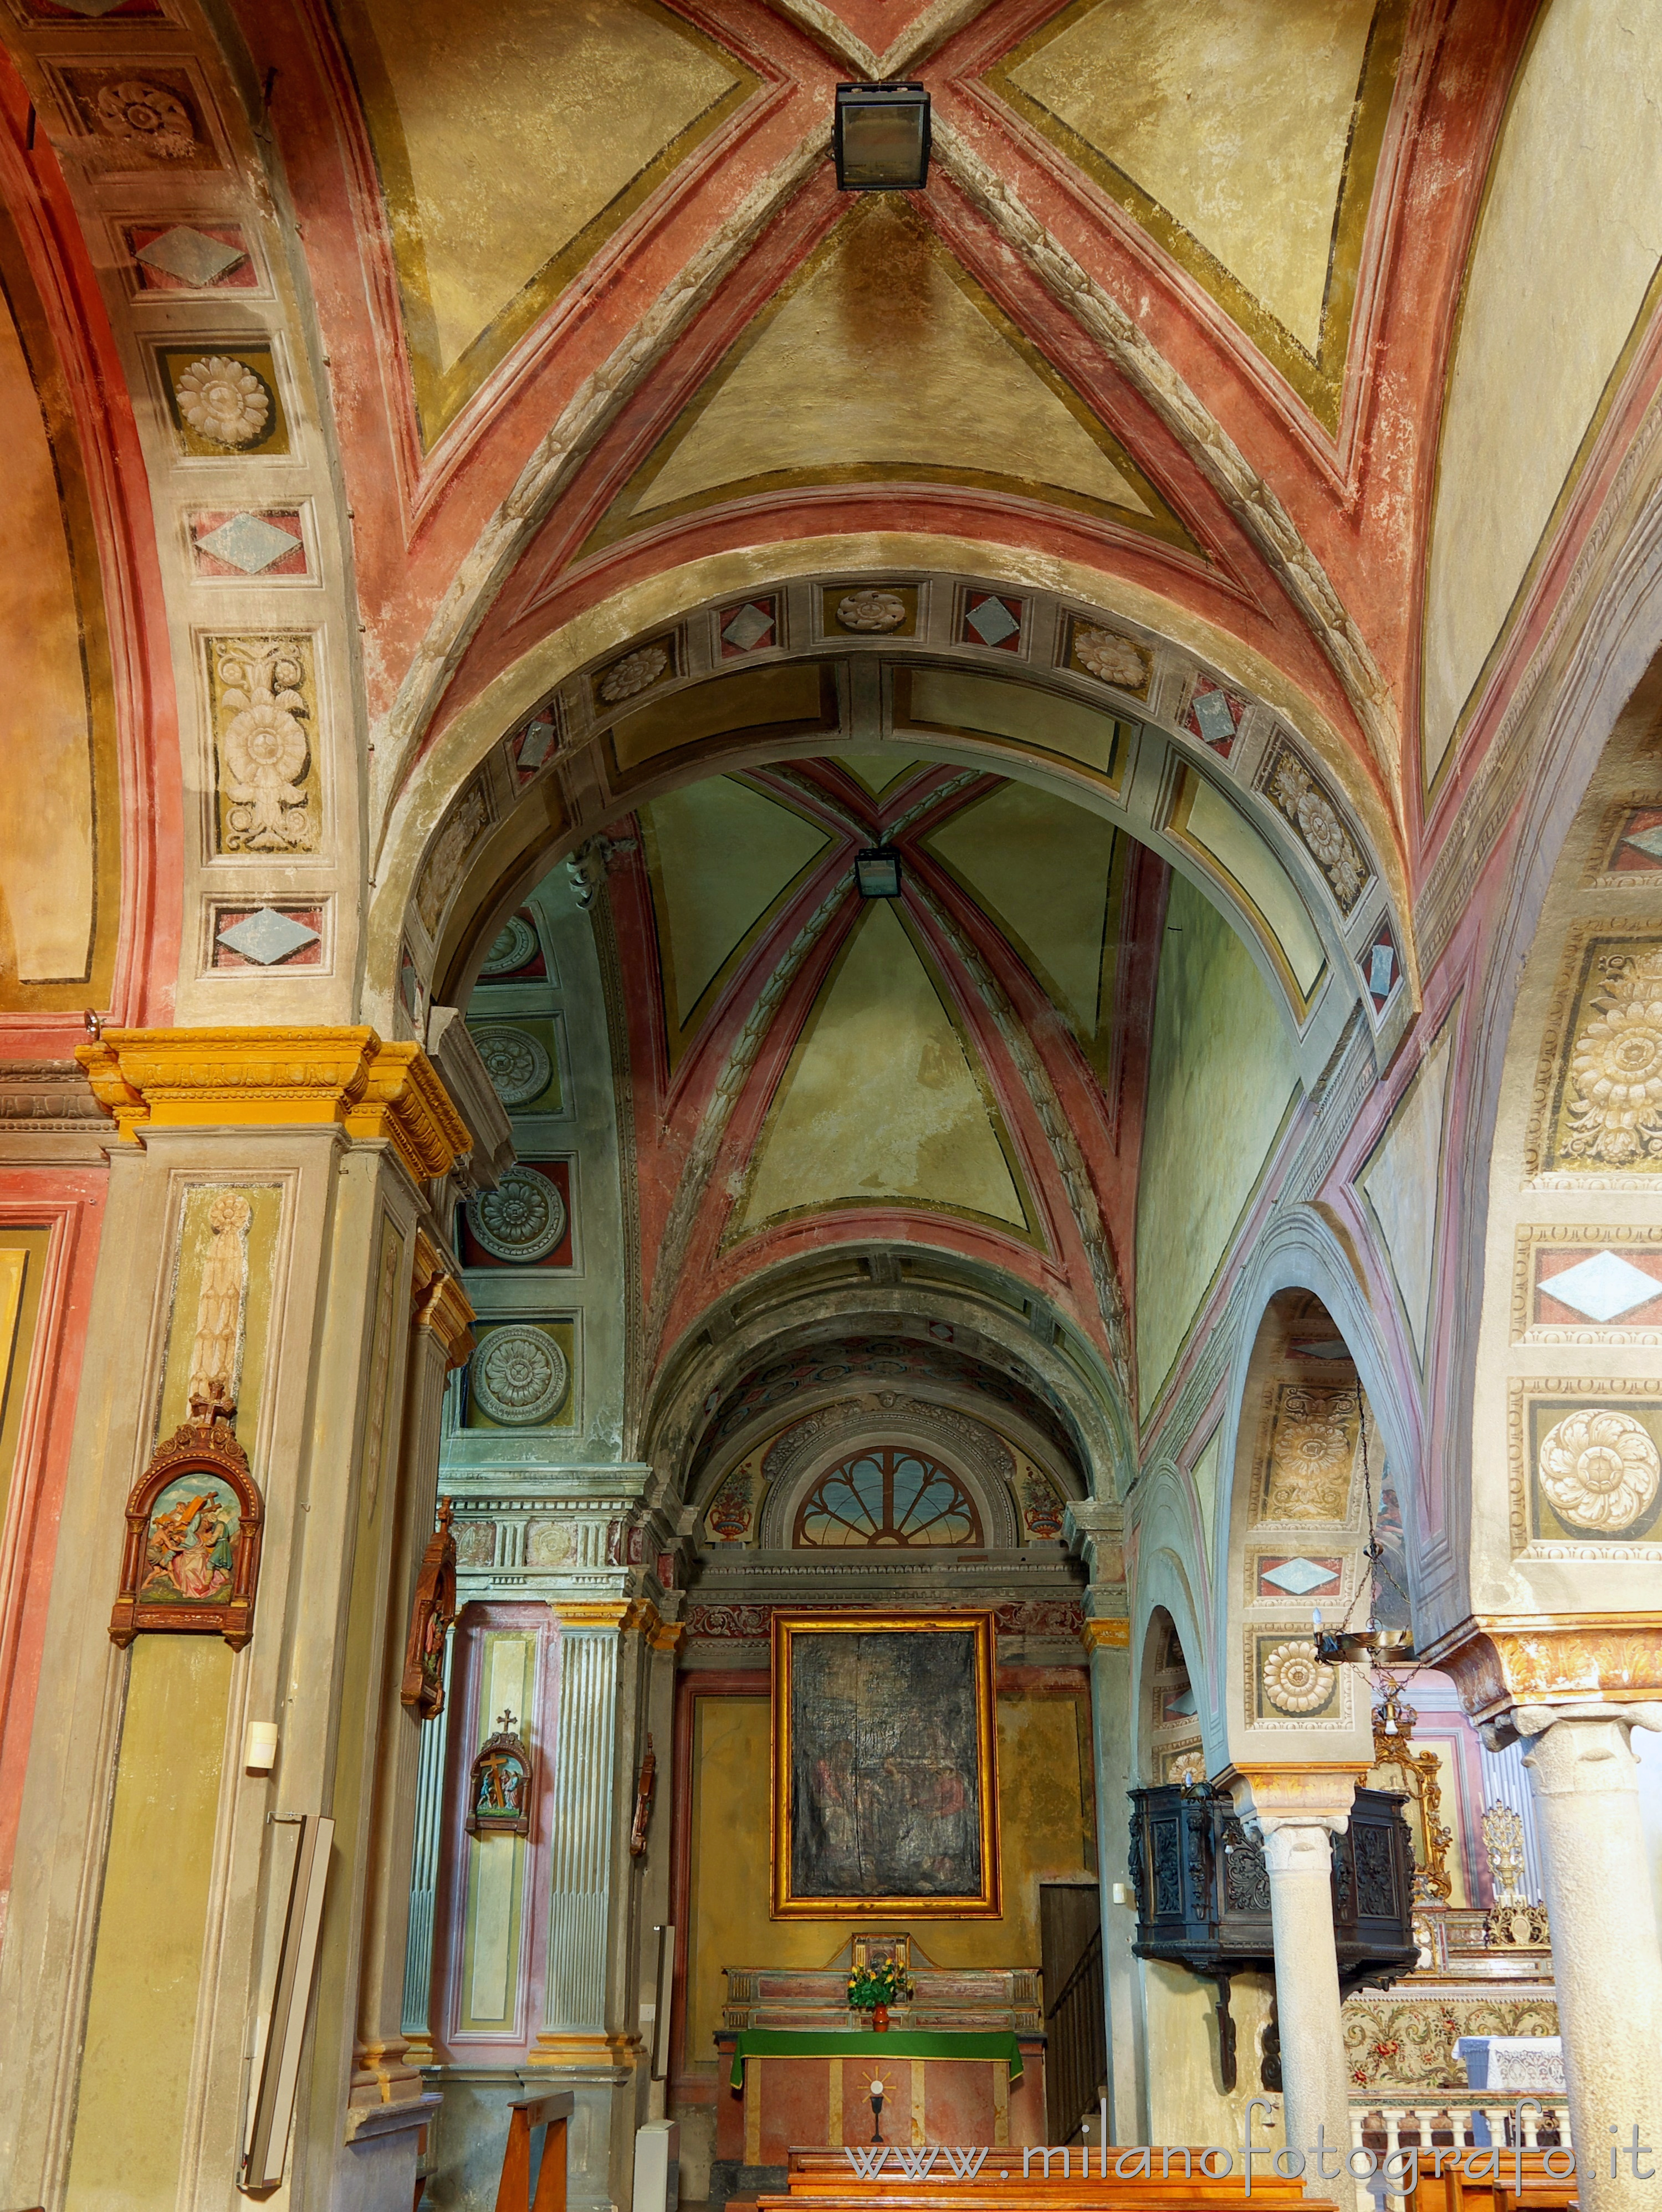 Candelo (Biella, Italy): Left aisle of the Church of Santa Maria Maggiore - Candelo (Biella, Italy)